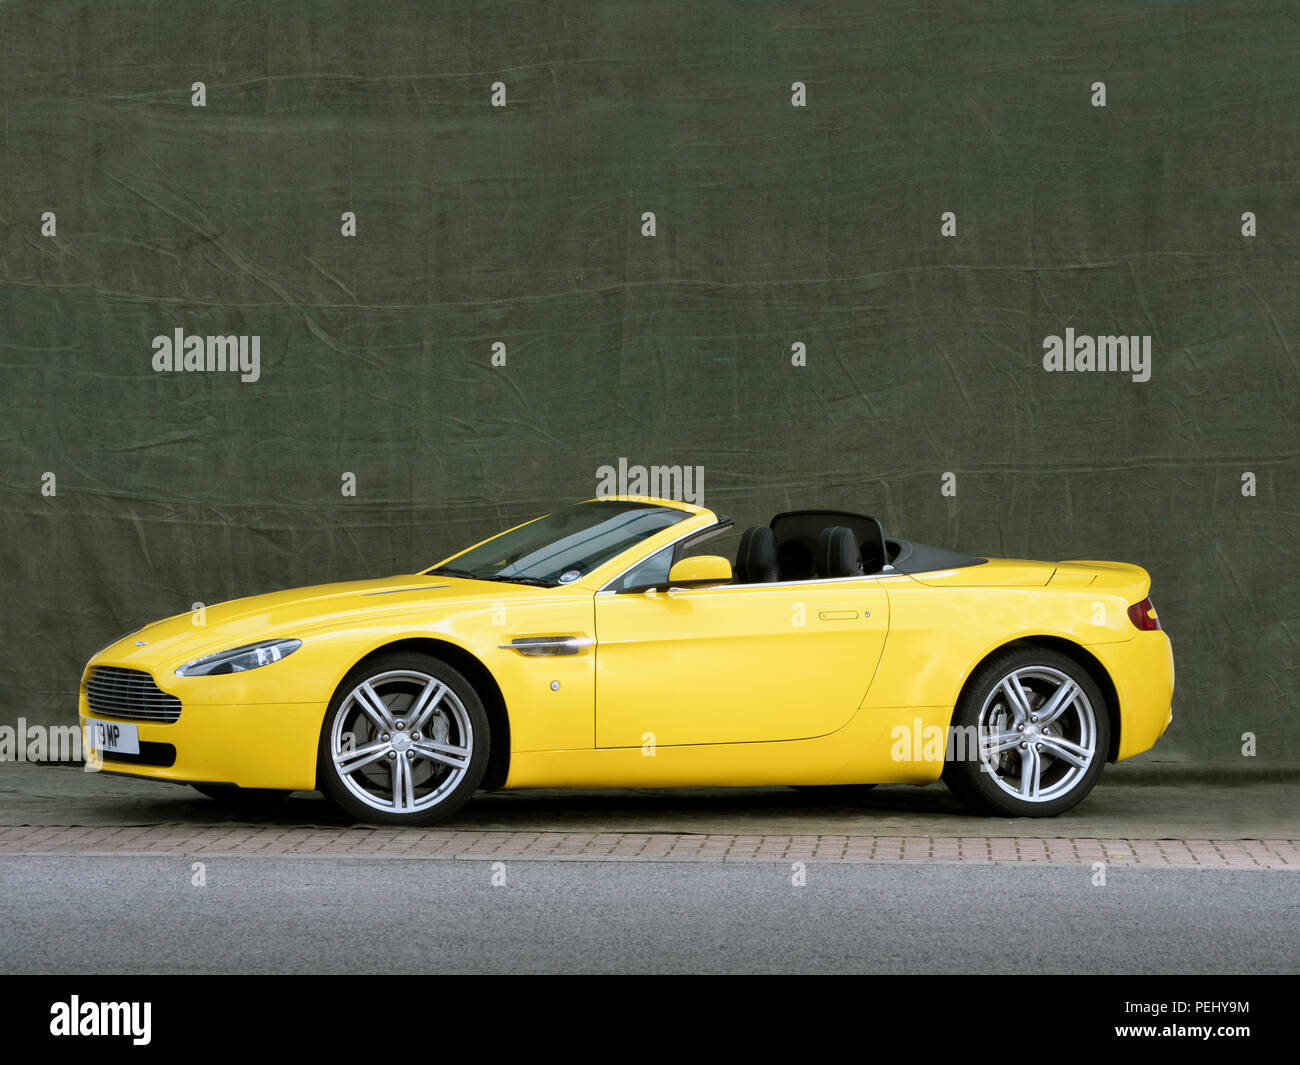 Vantage Stock Photos & Vantage Stock Images - Alamy